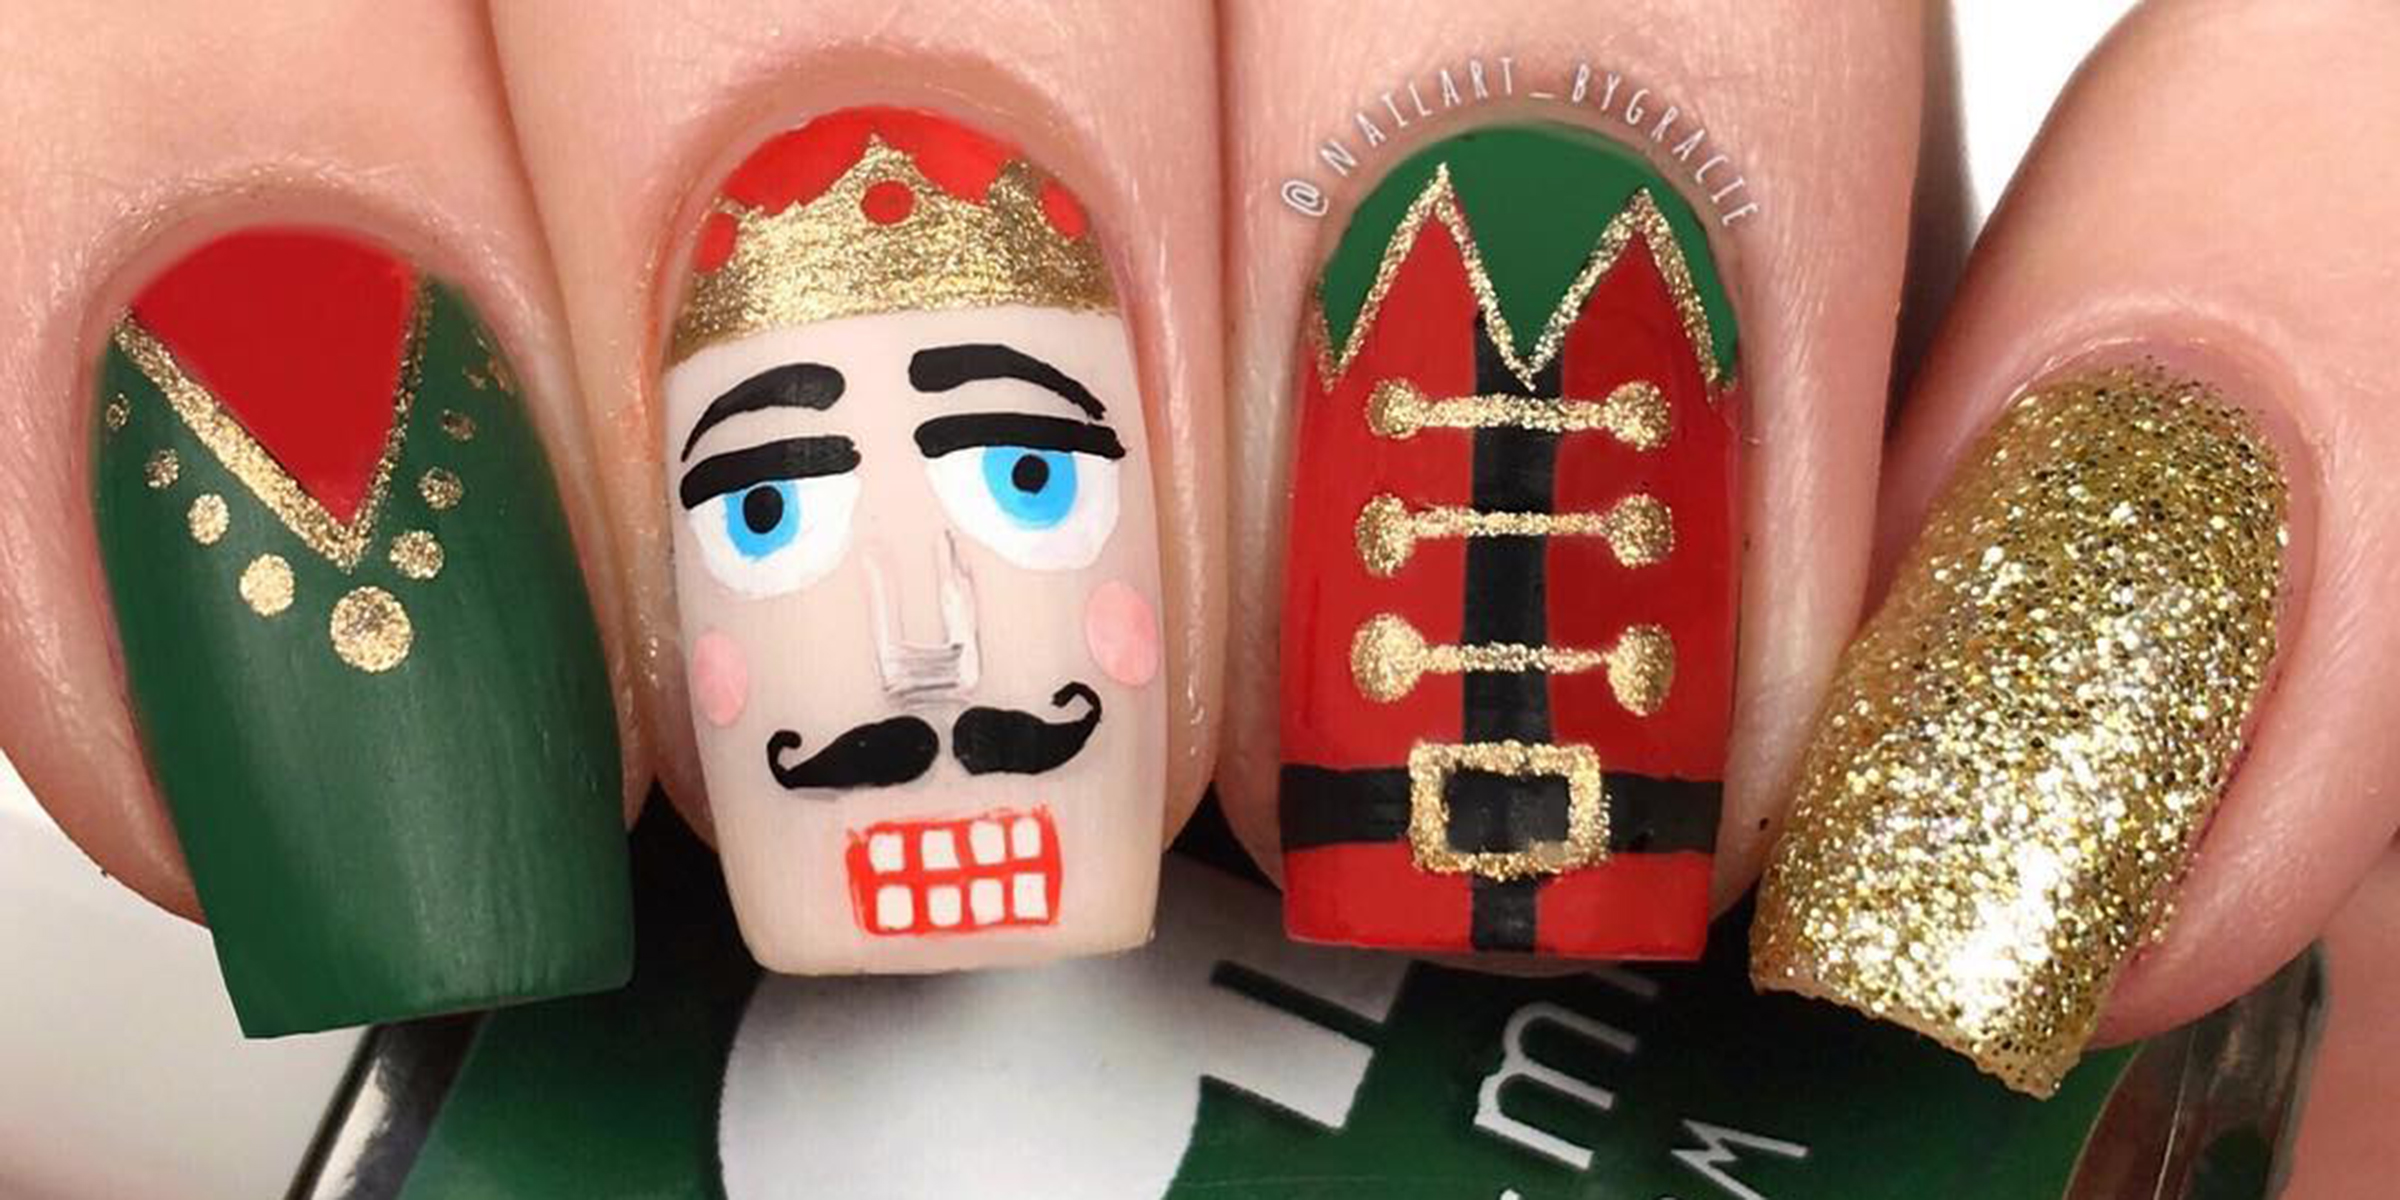 Holiday nails 2019 15 Christmas nails designs to try